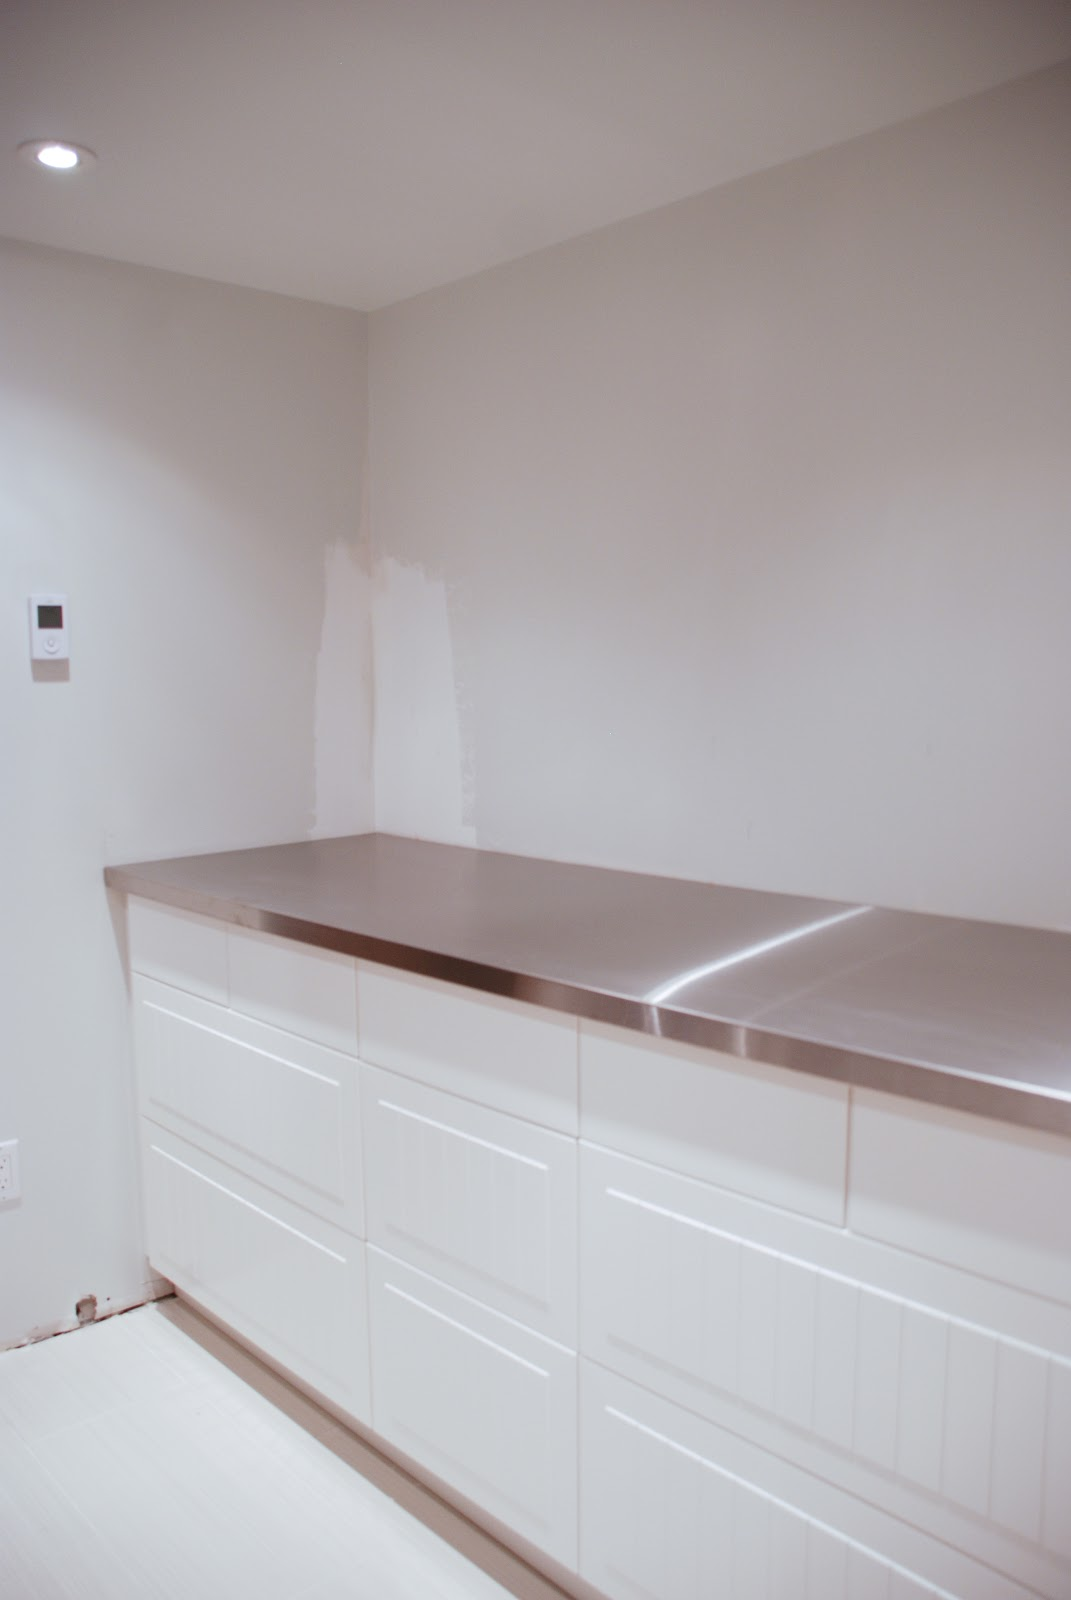 Make Stainless Steel Countertop How To Support A Countertop Rambling Renovators